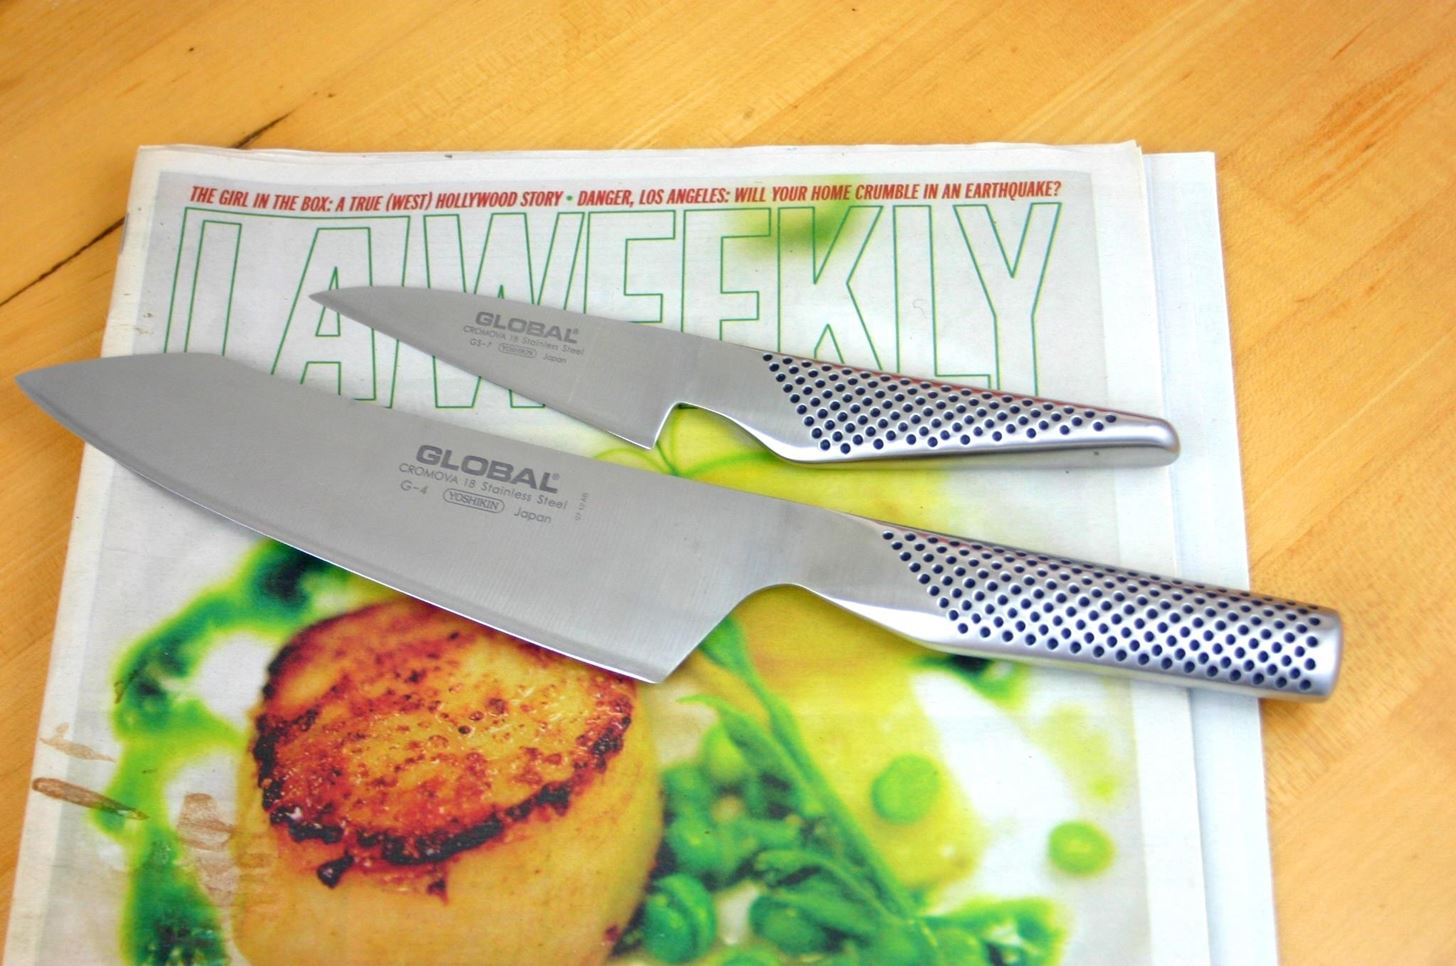 How to Sharpen Kitchen Knives with a Newspaper